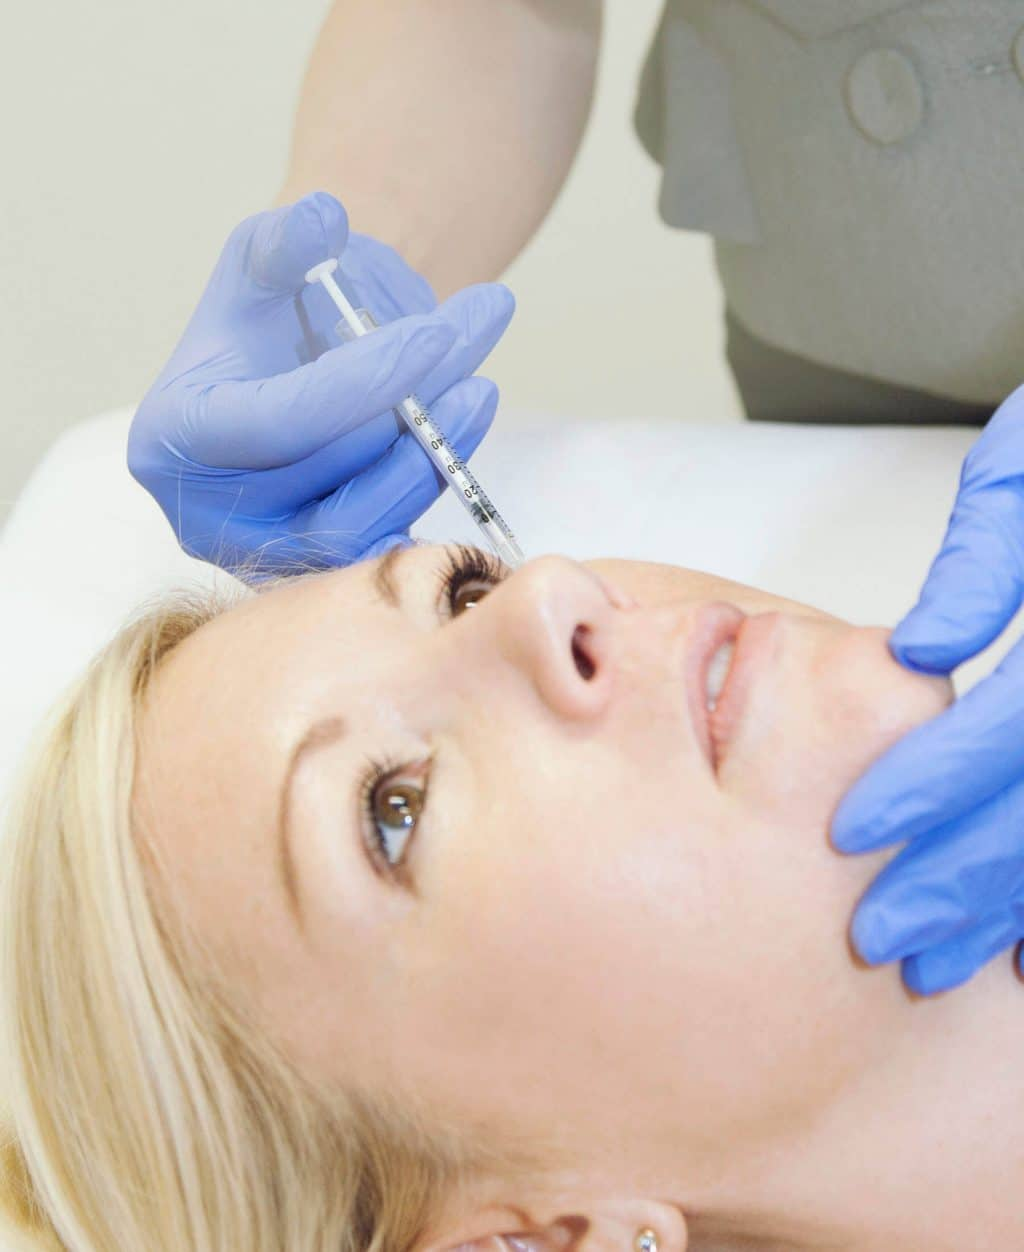 How do anti-wrinkle injections minimise the signs of aging?